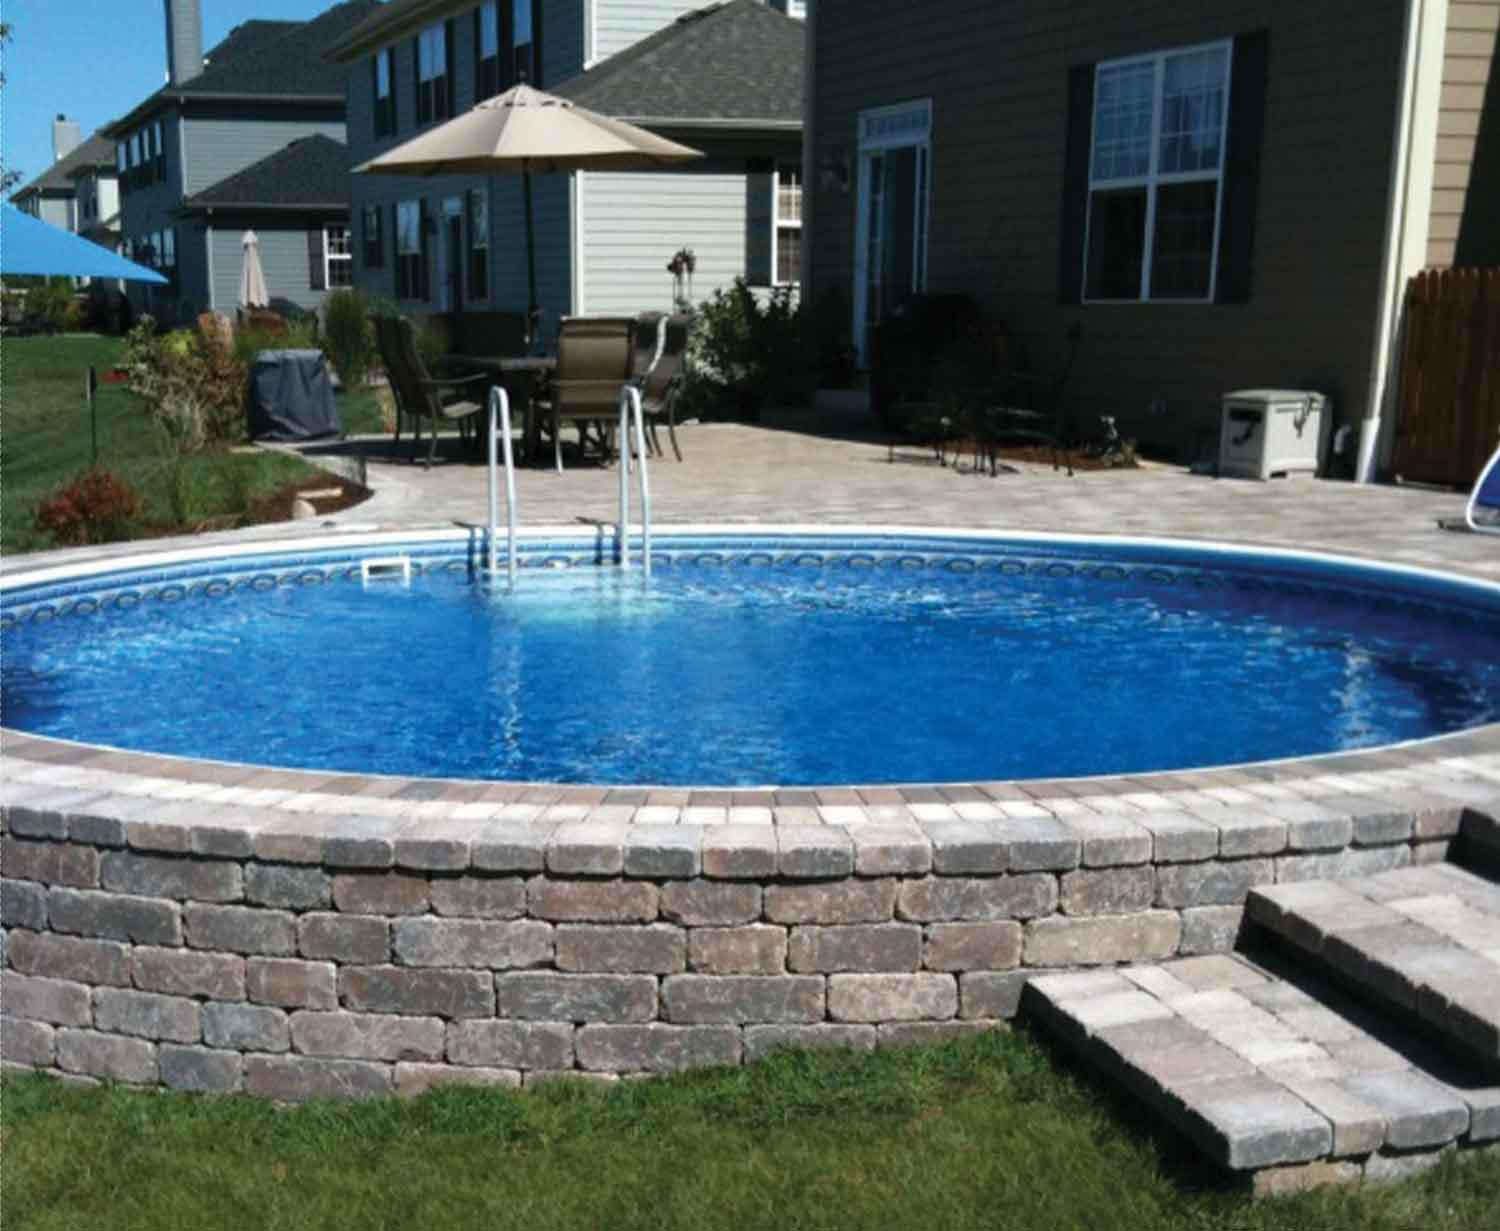 Radiant Pools Price List | Semi Inground Pool Ideas | Semi Inground Pool Installation Cost